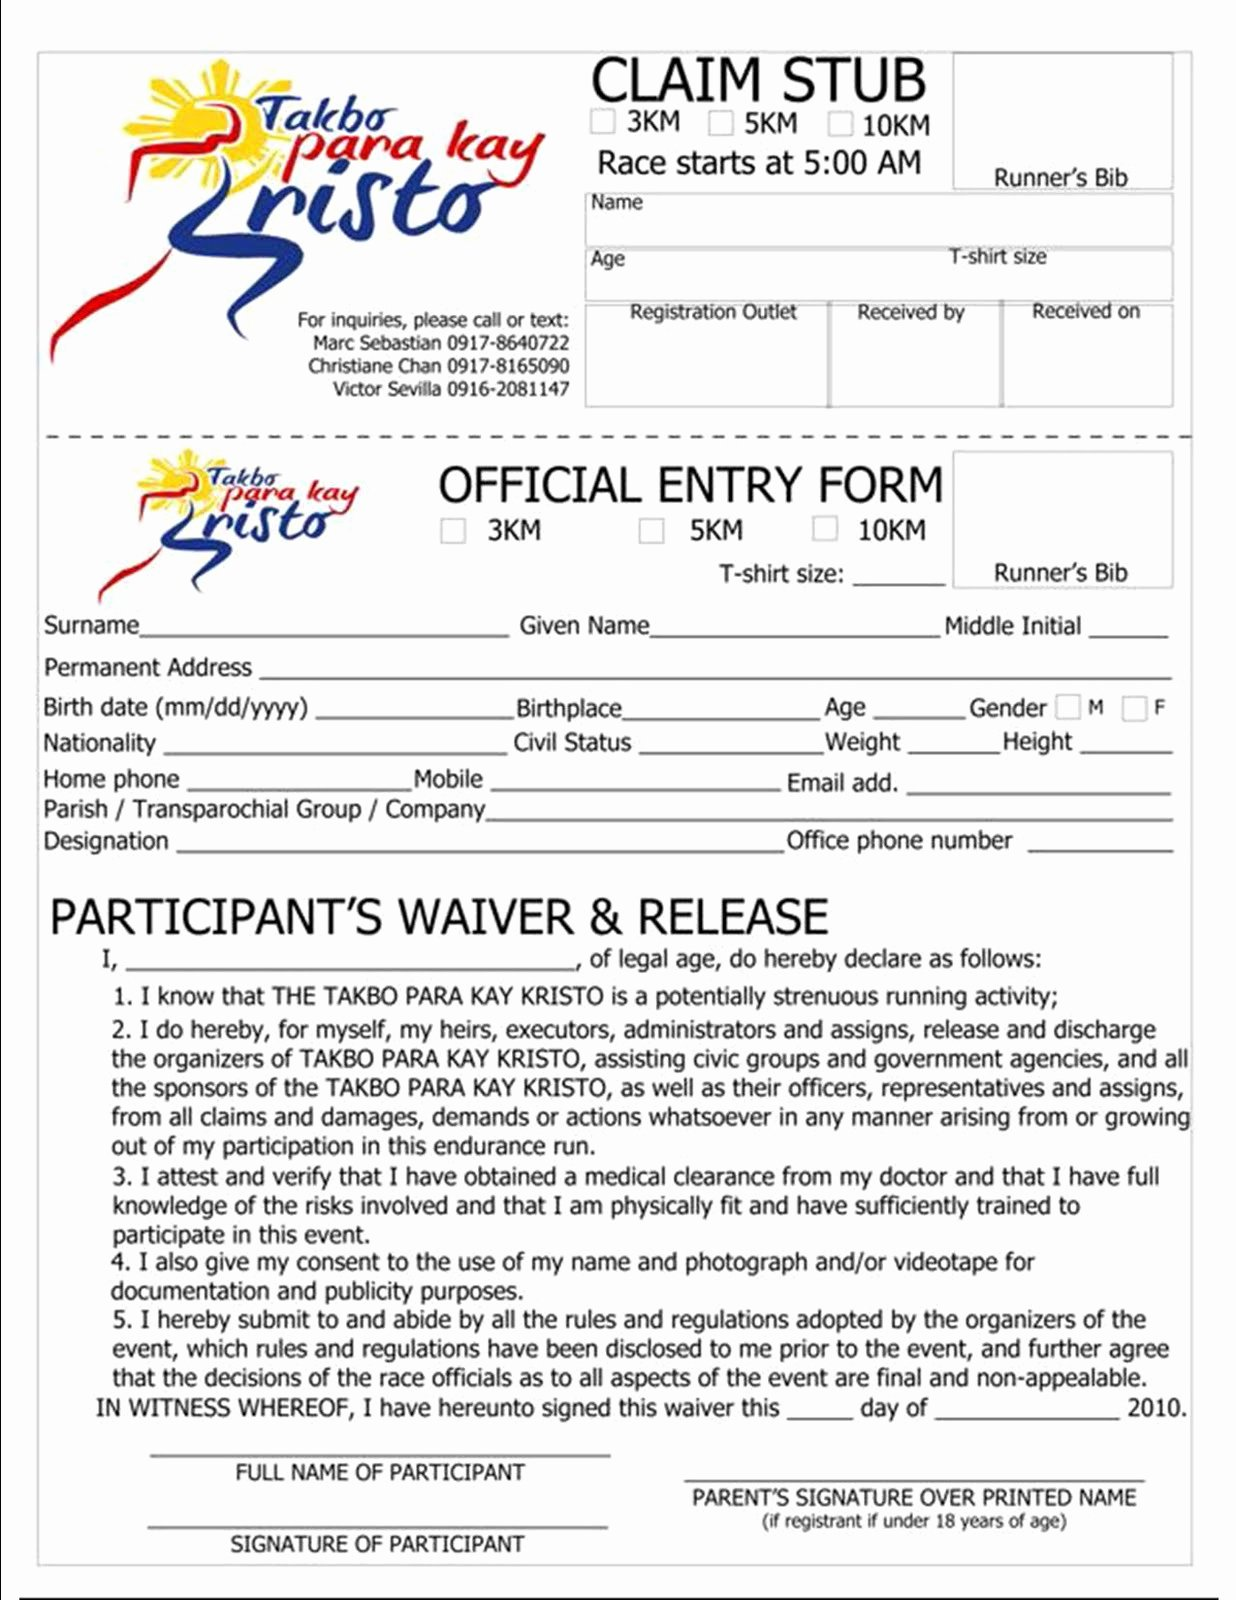 5k Registration form Template Luxury Jet Paiso April 2010